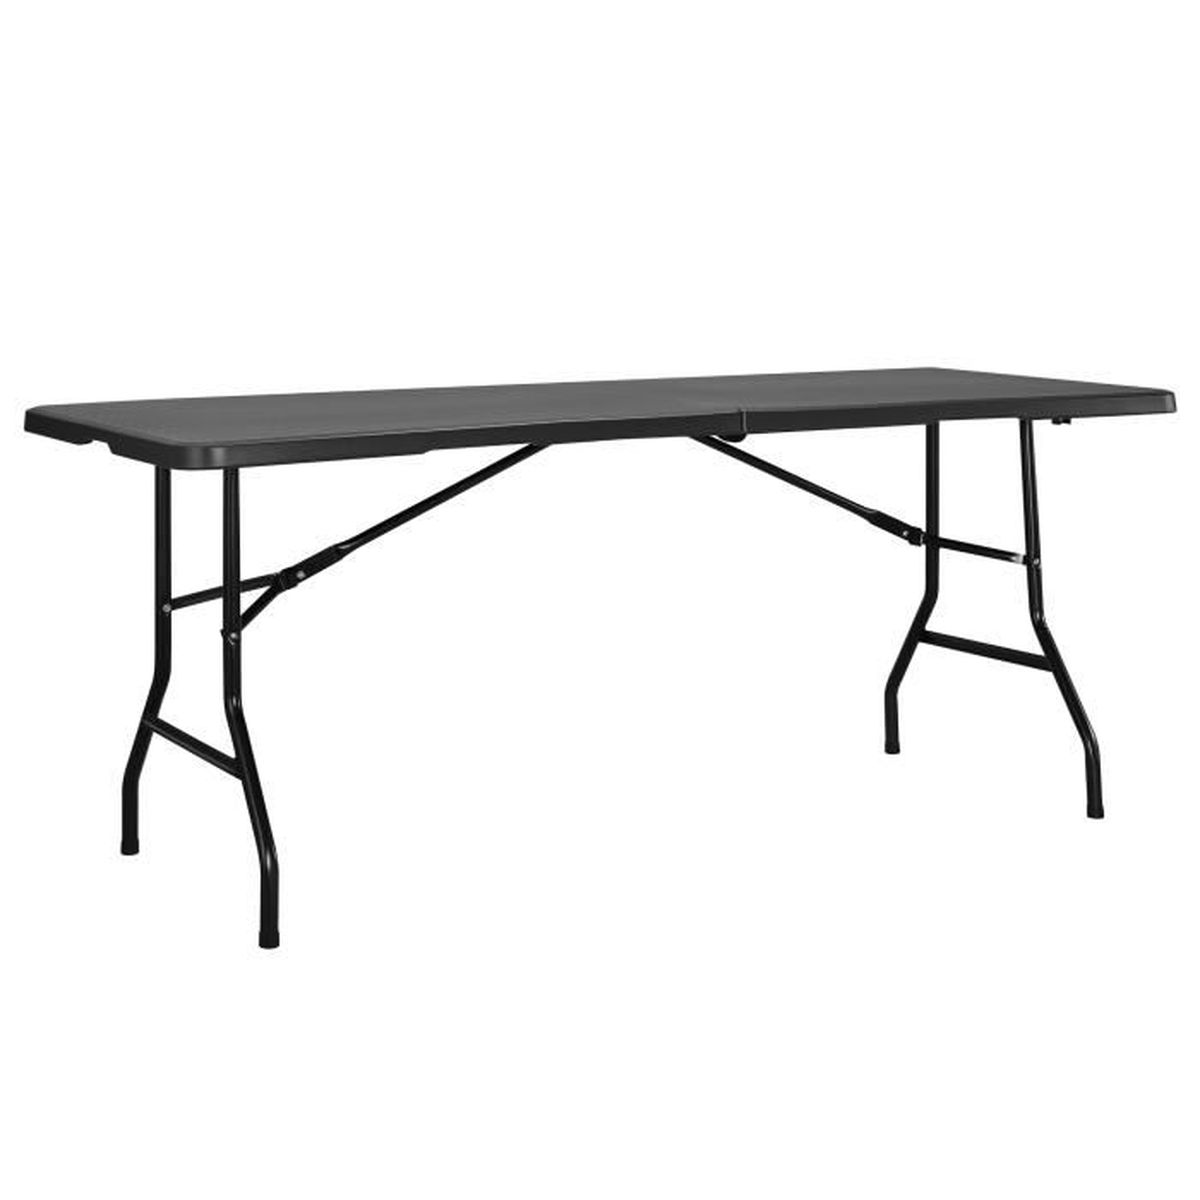 table de jardin gris anthracite achat vente table de jardin gris anthracite pas cher cdiscount. Black Bedroom Furniture Sets. Home Design Ideas